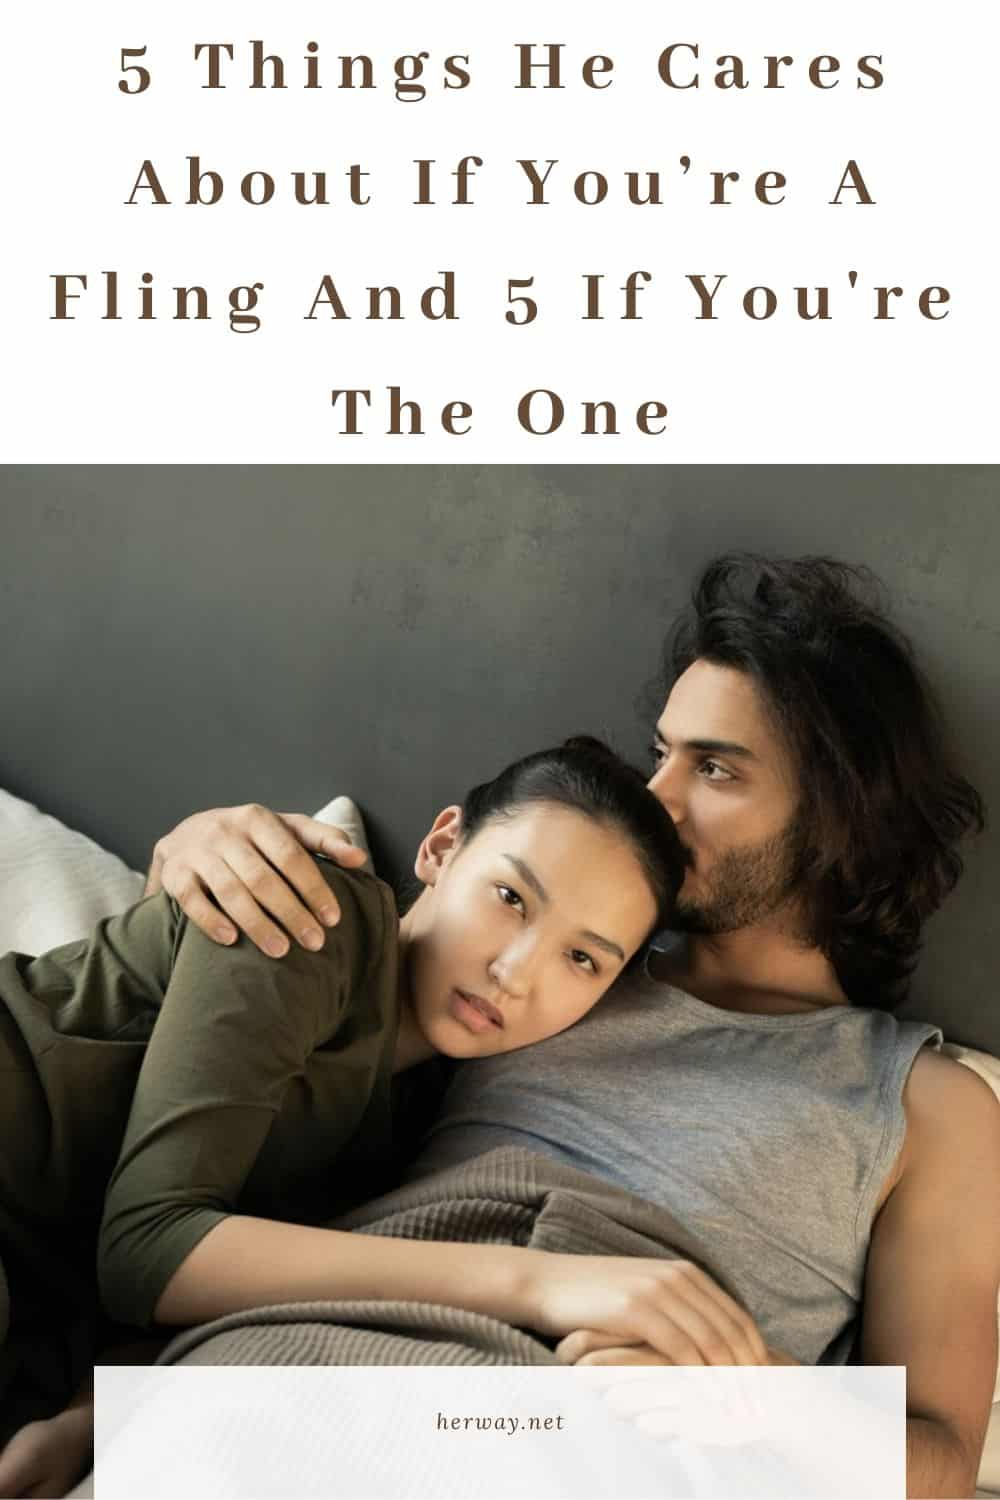 5 Things He Cares About If You're A Fling And 5 If You're The One